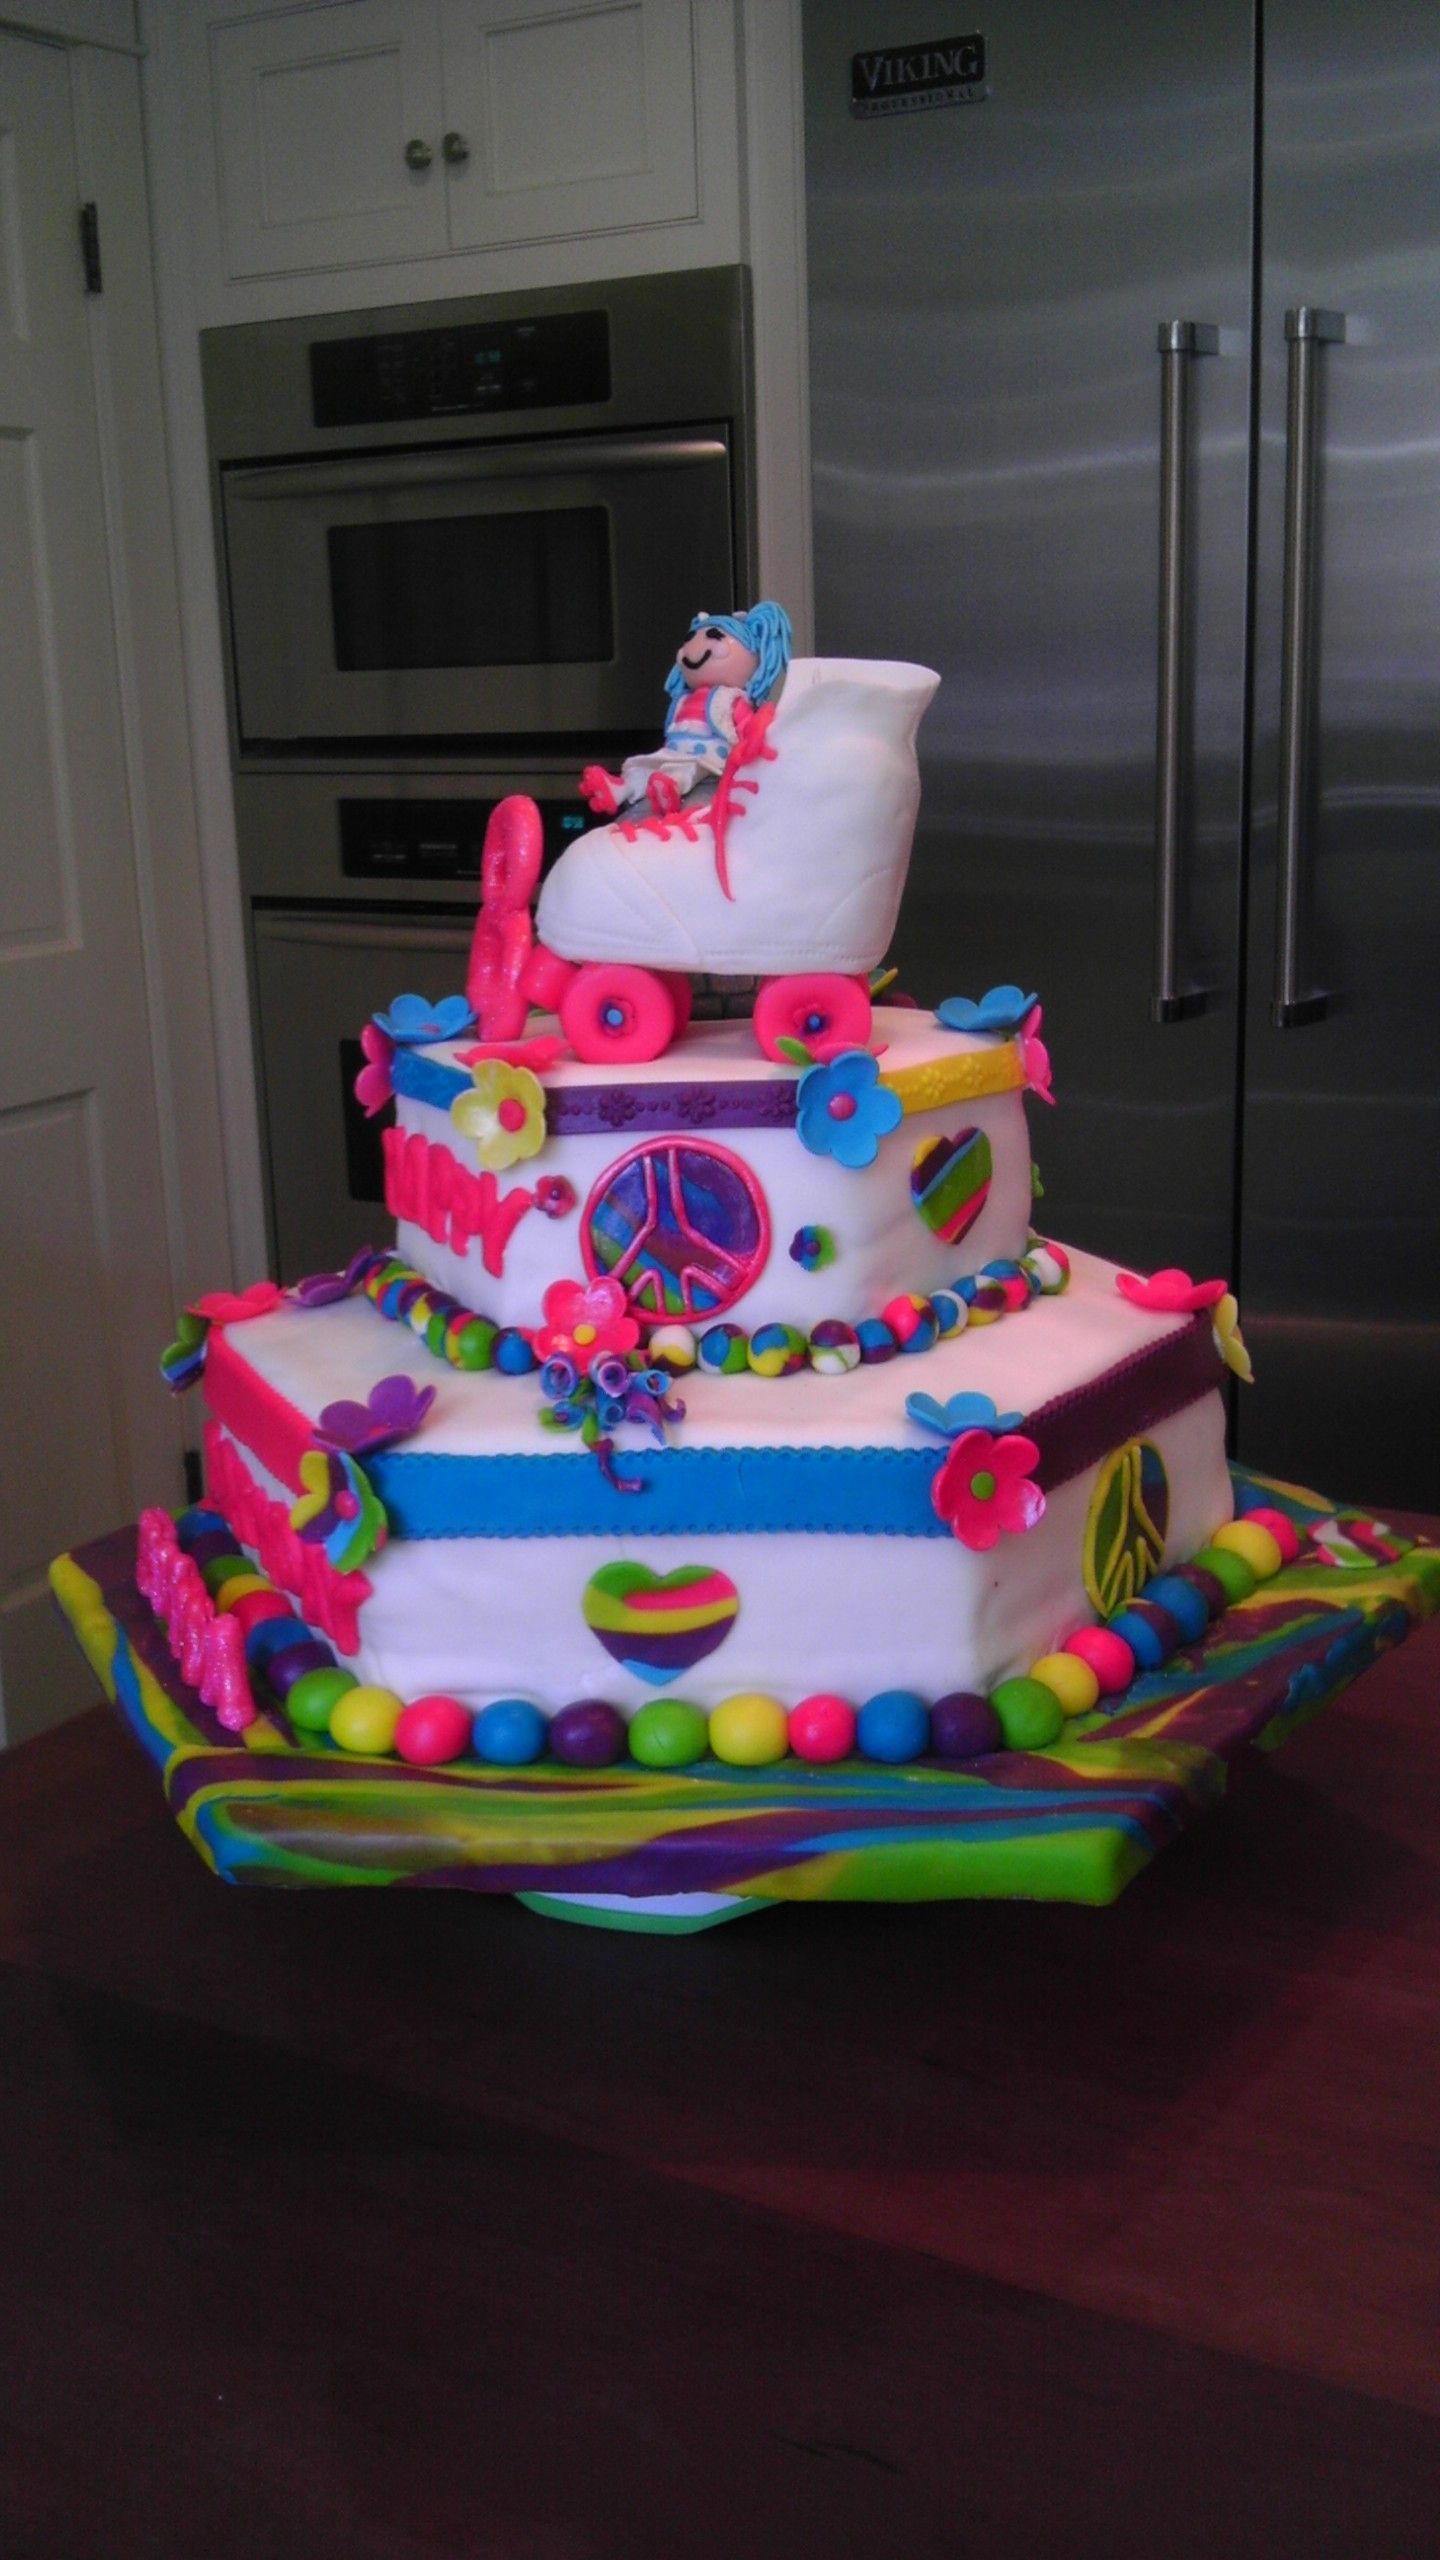 Roller skating rink westchester ny - Lalaloopsy Roller Skate Disco Party Theme Cake